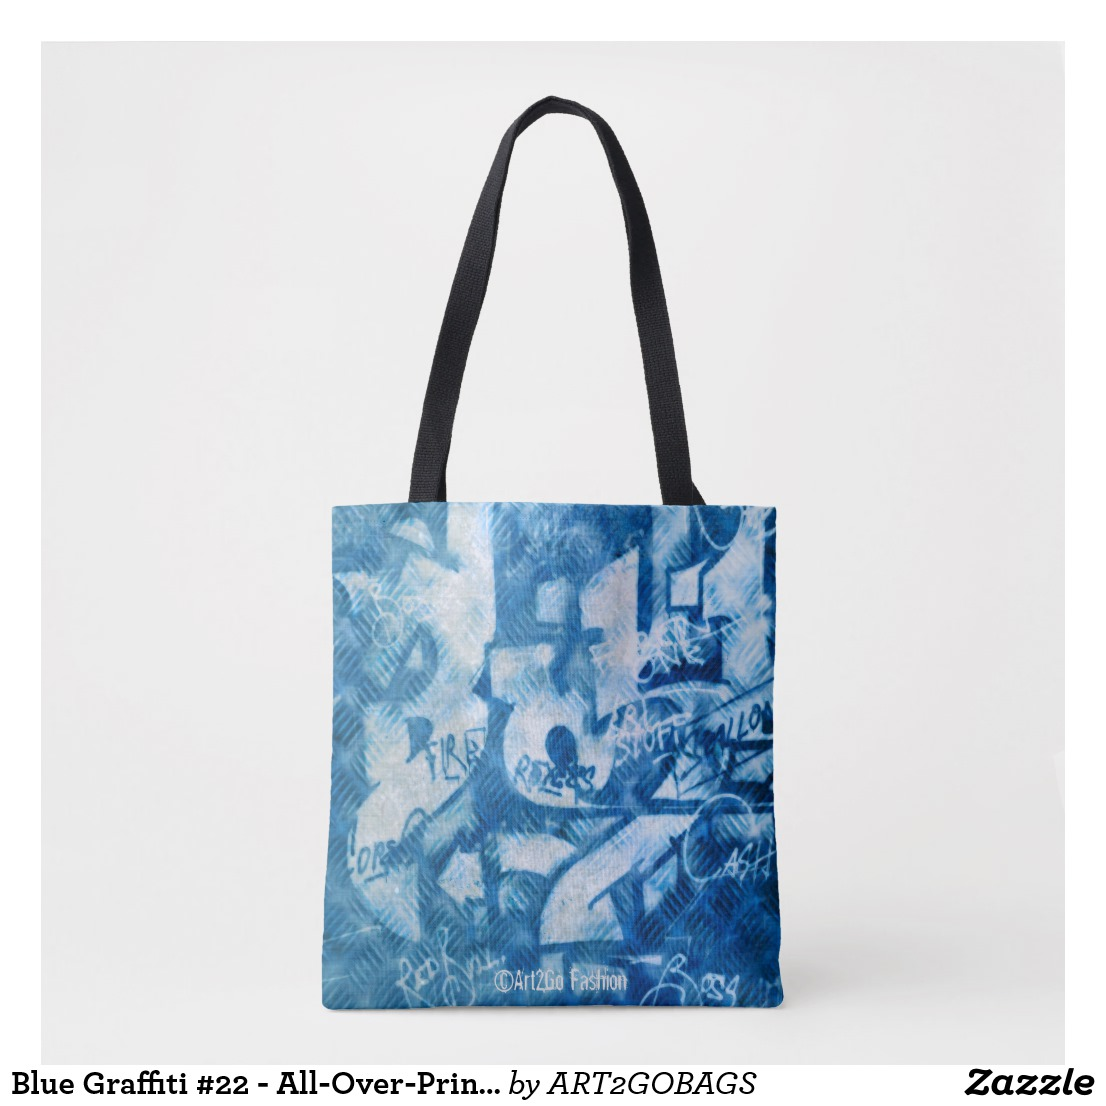 Blue Graffiti #22 - All-Over-Print Cross Body Bag